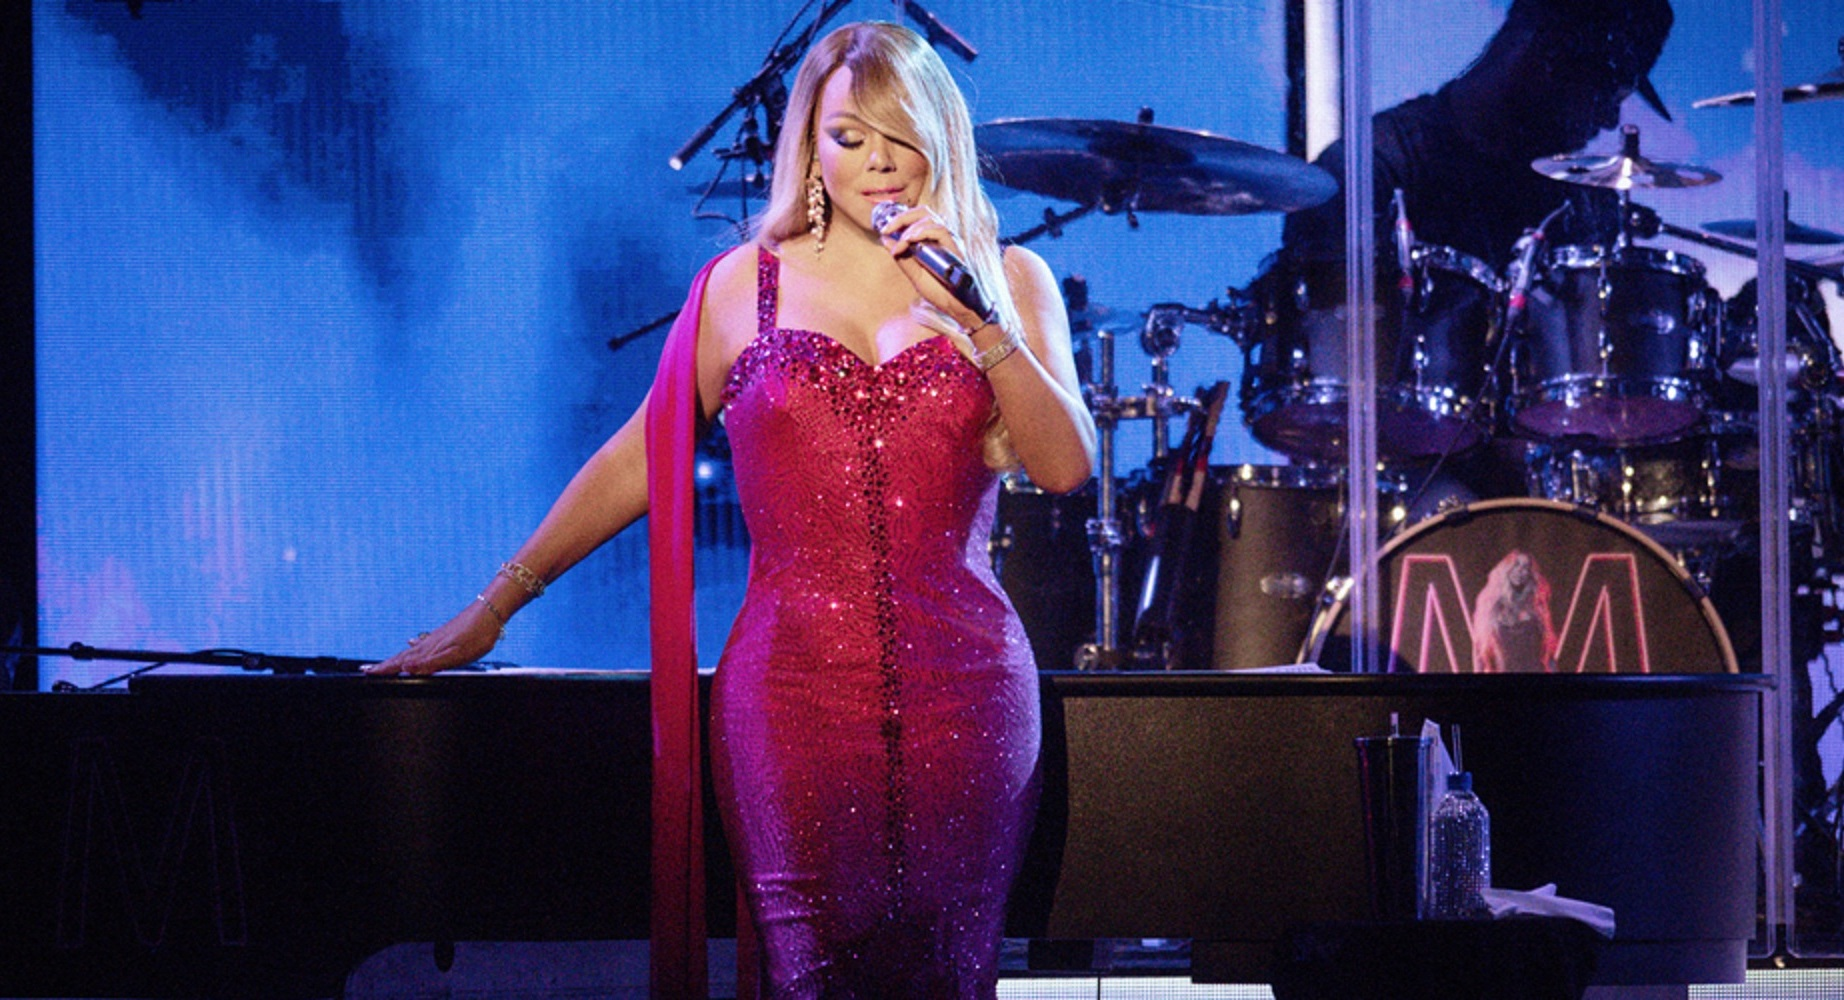 Watch: Mariah Carey Begins 'Caution Tour' With Performances Of 'Hero', 'GTFO', 'Glitter' and More!